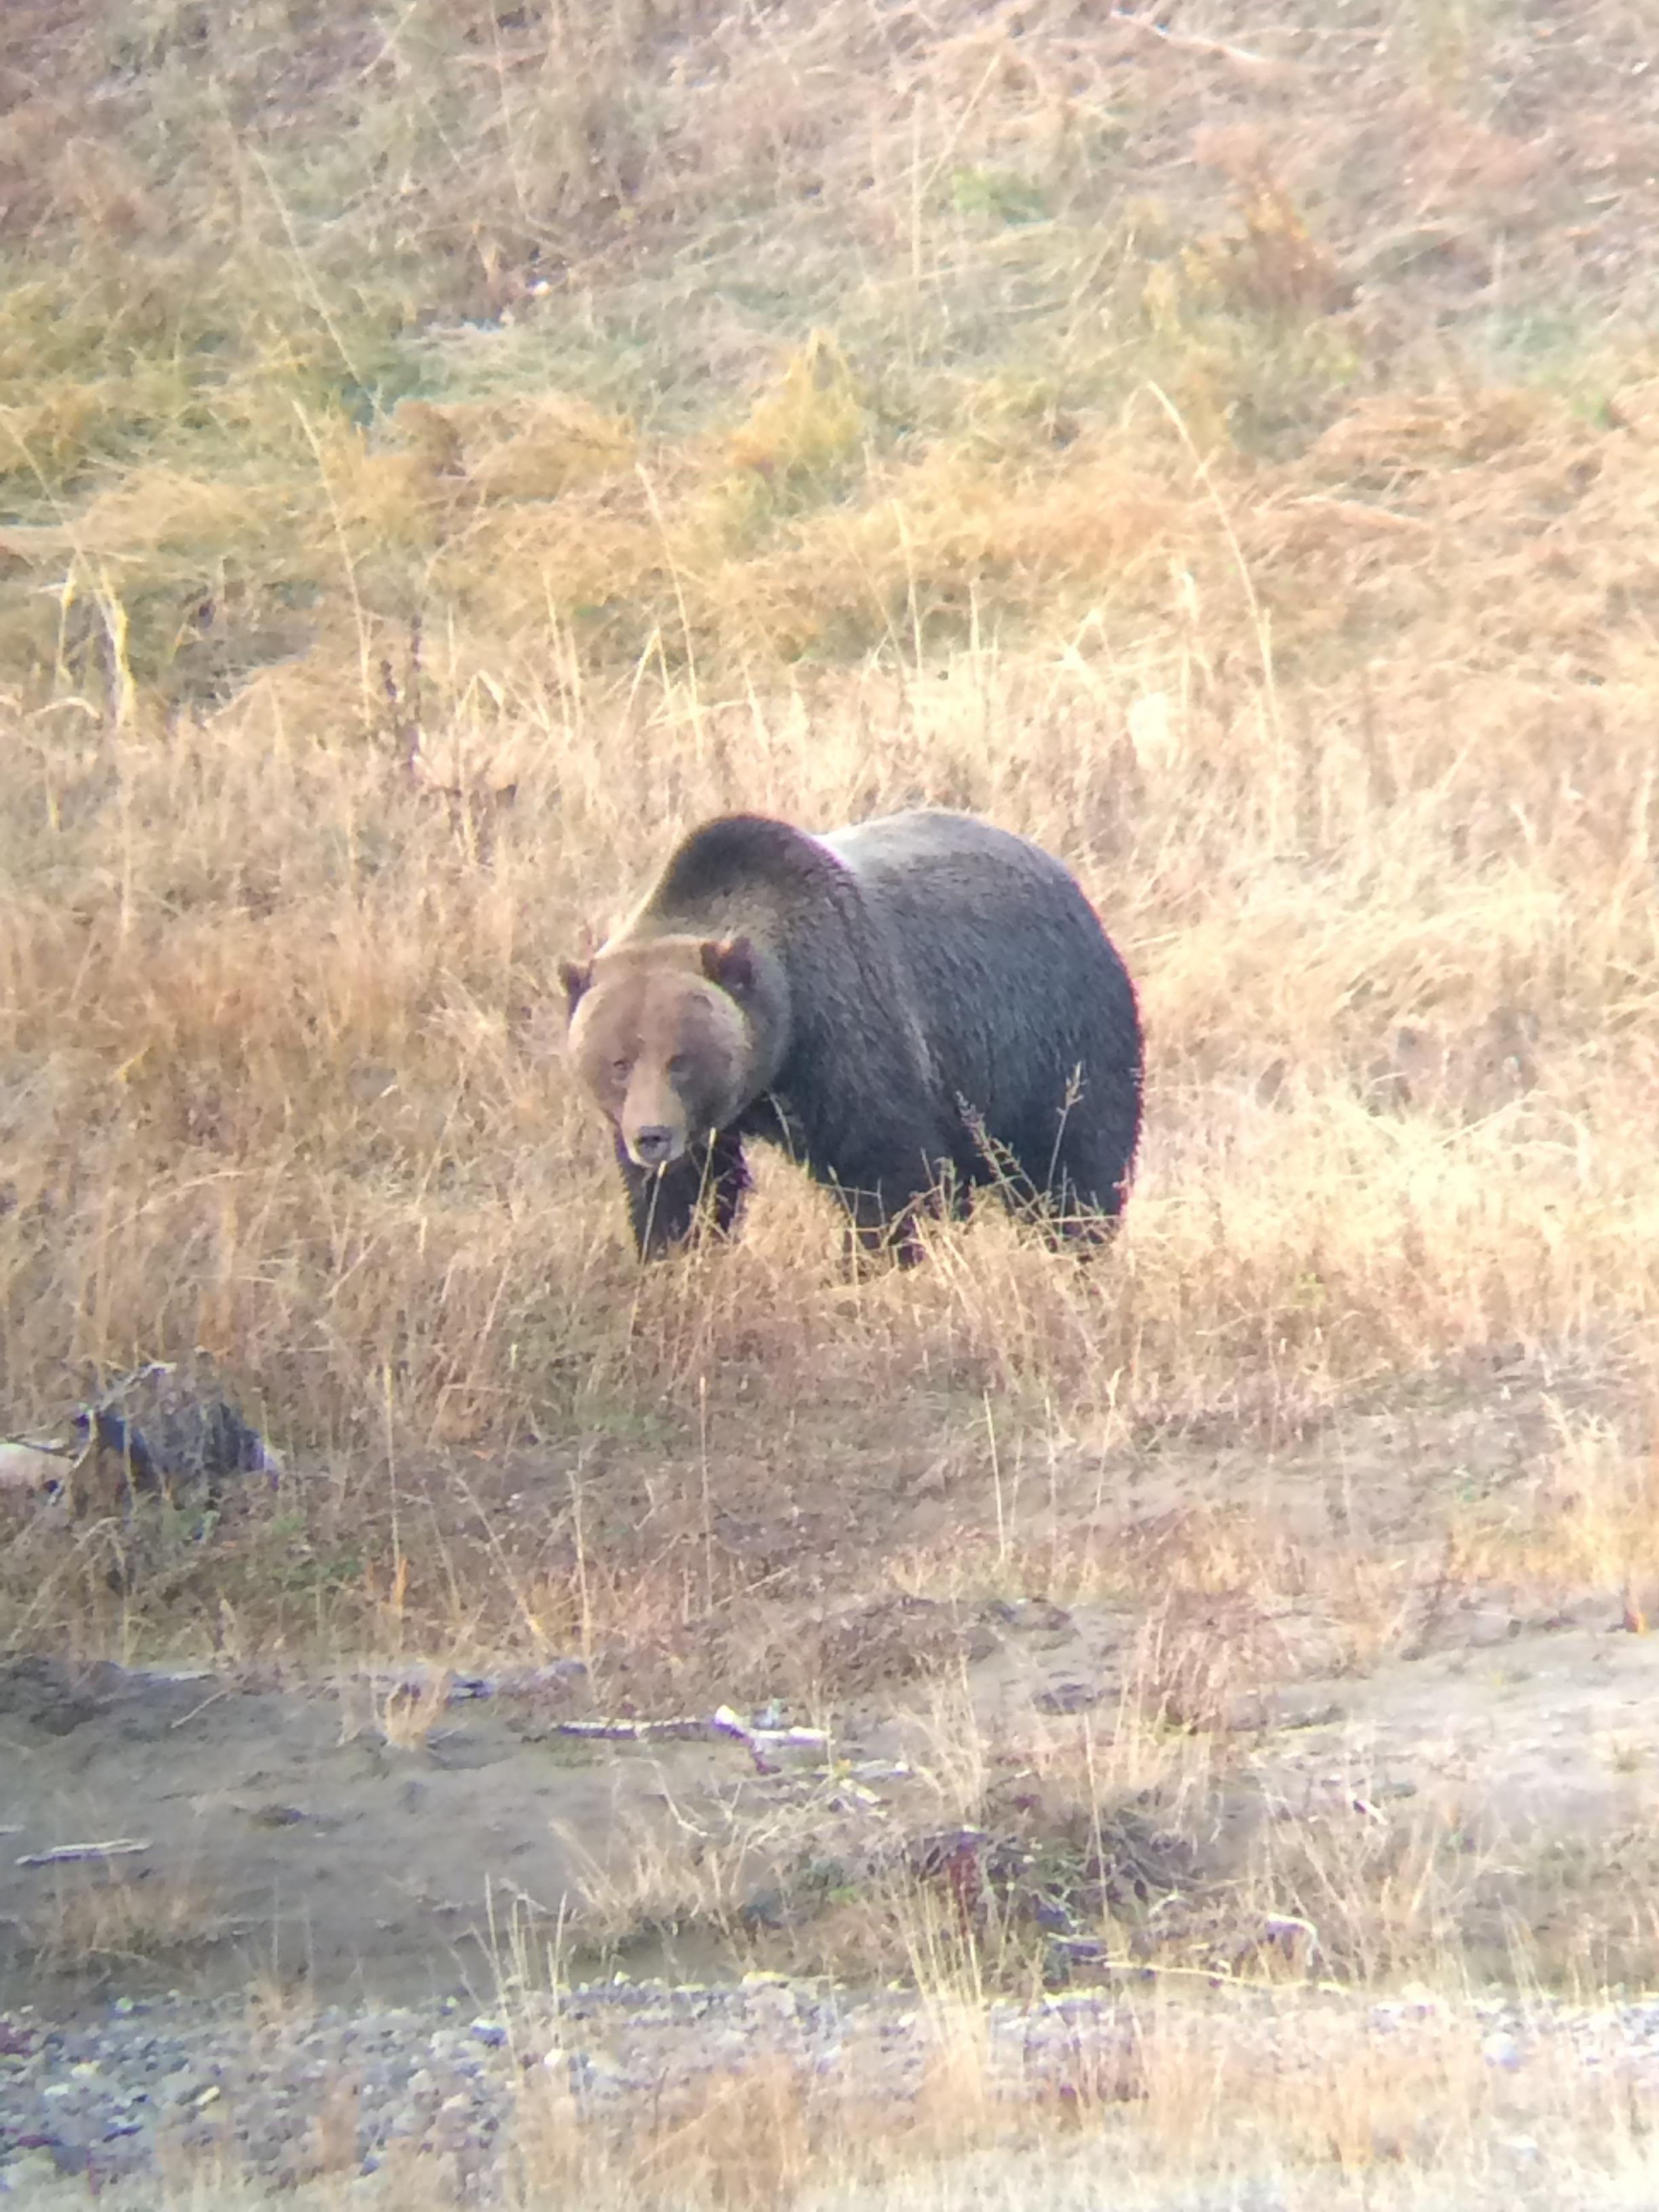 Grizzly bear in Yellowstone. We're speaking out for wise bear management as Wyoming holds public meetings. (Photo GYC.)